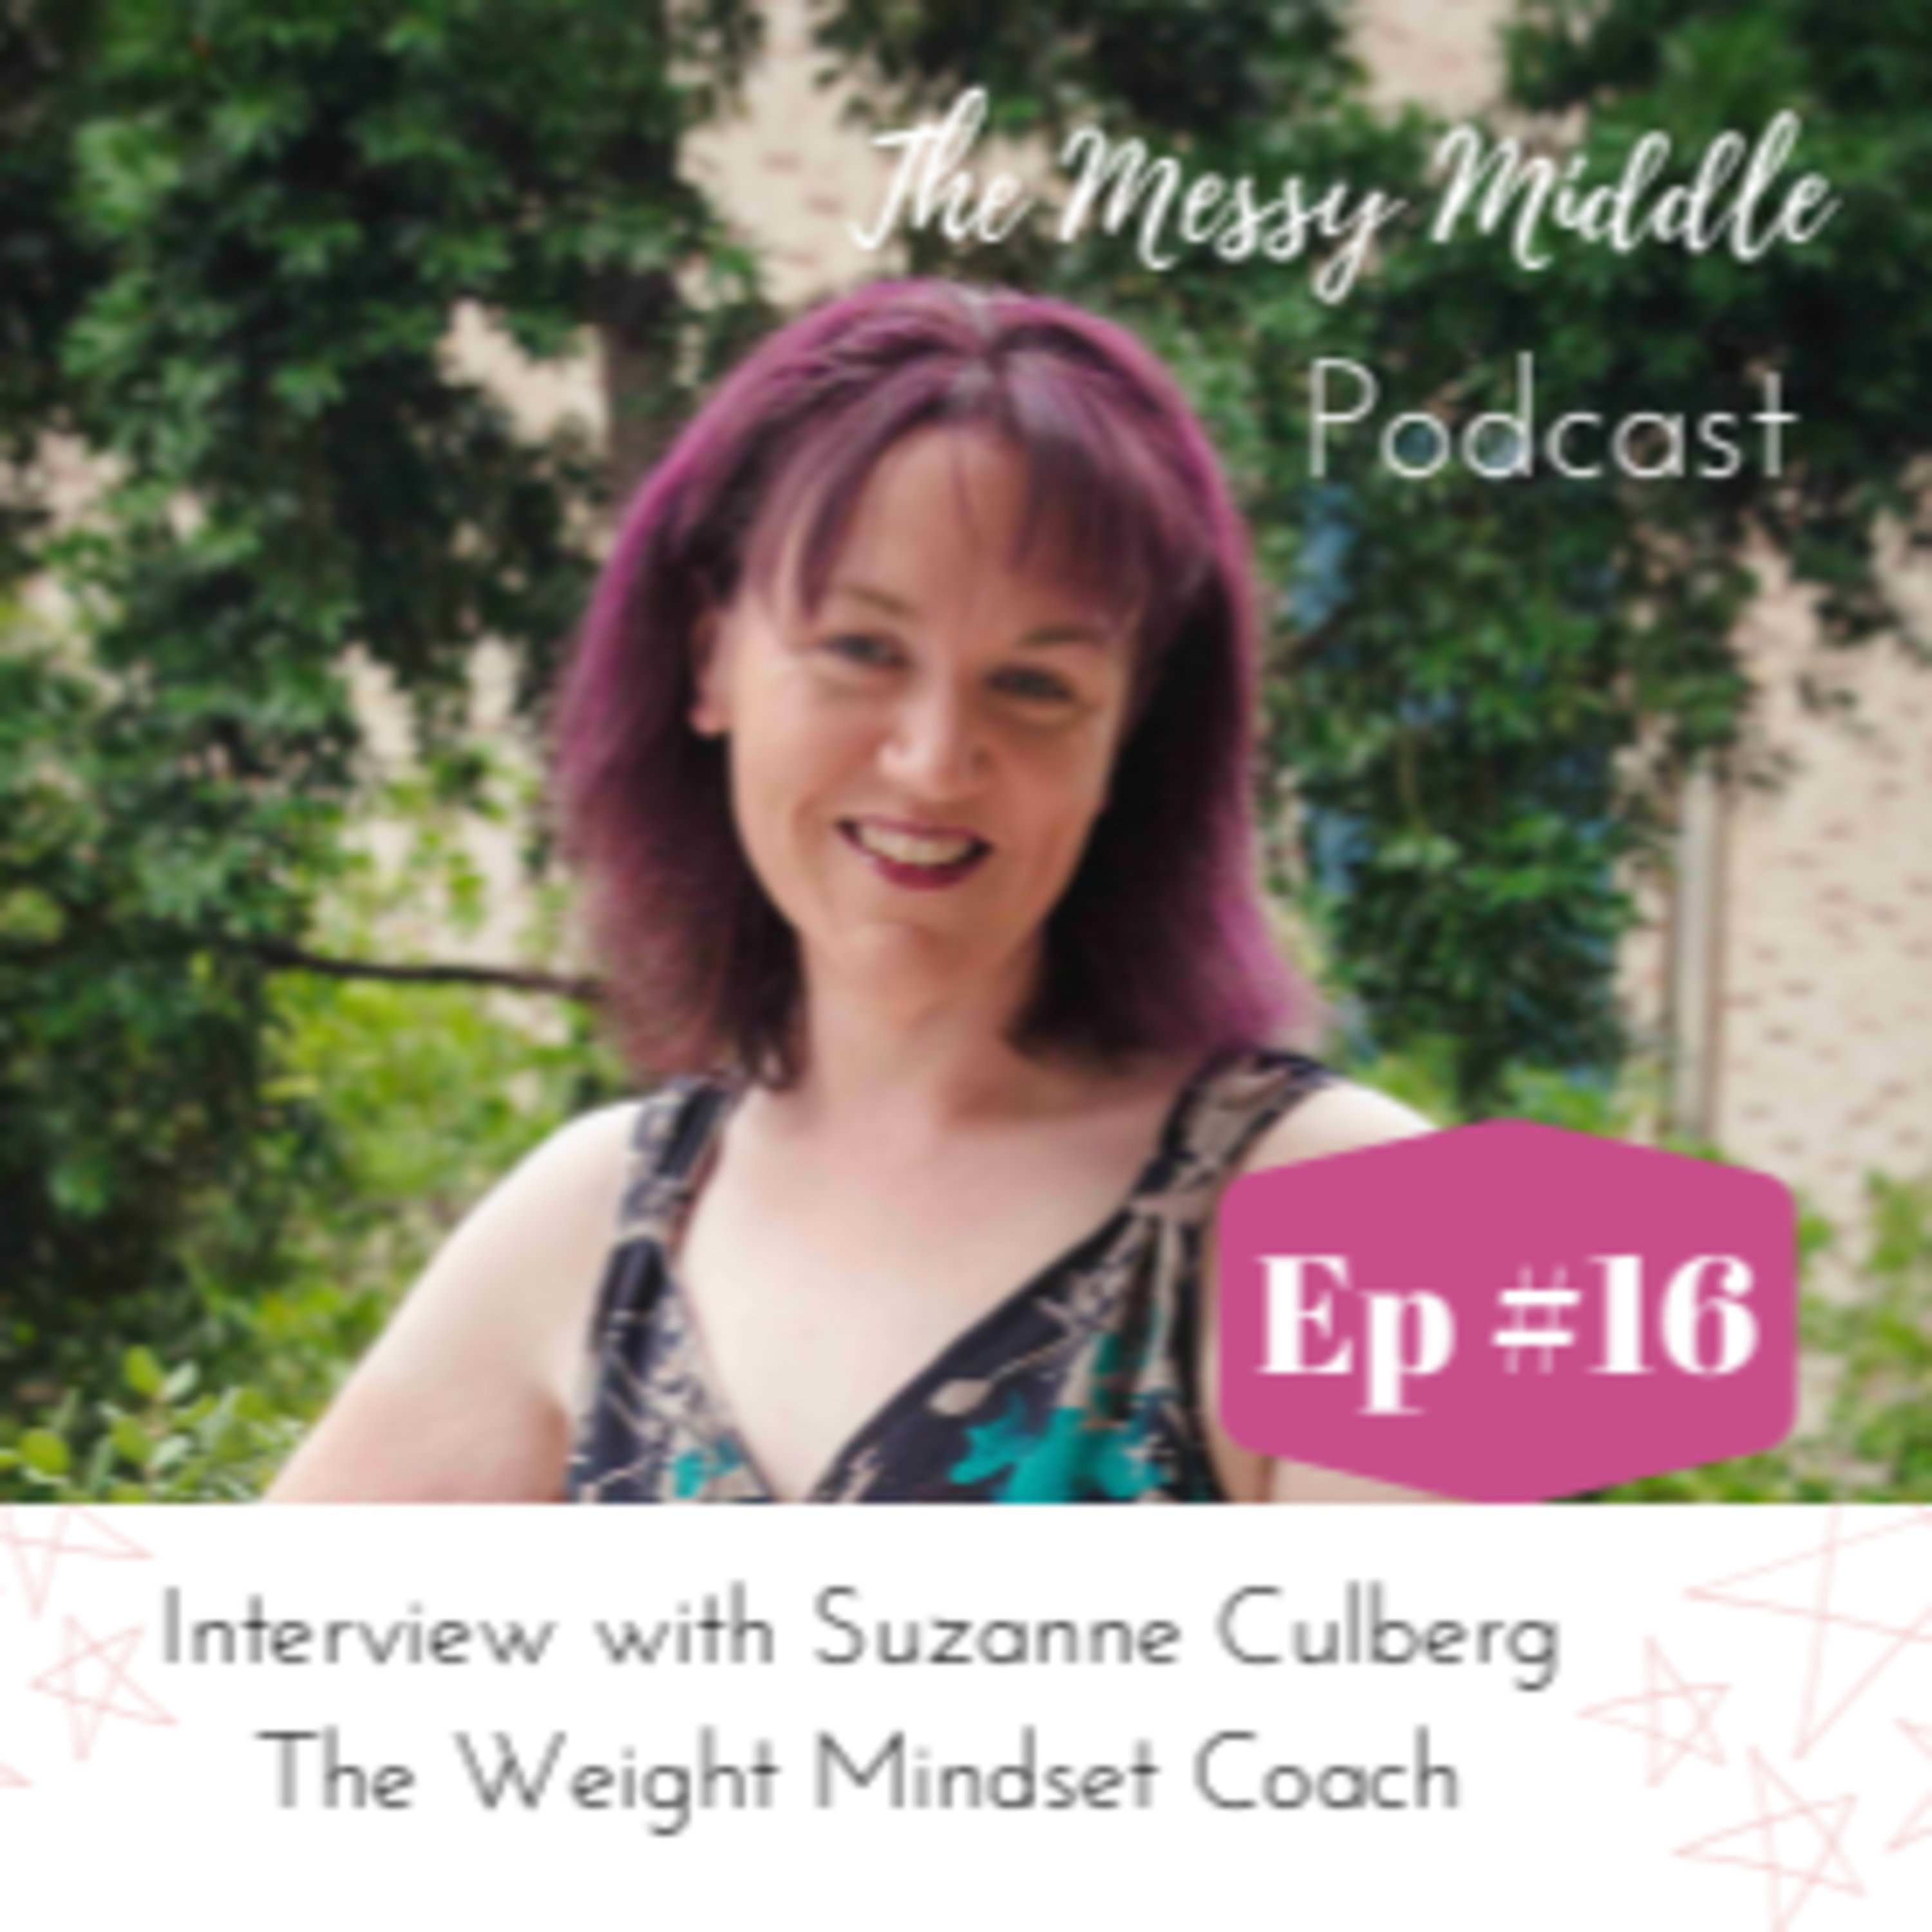 #16 Interview with Suzanne Culberg - The Weight Mindset Coach